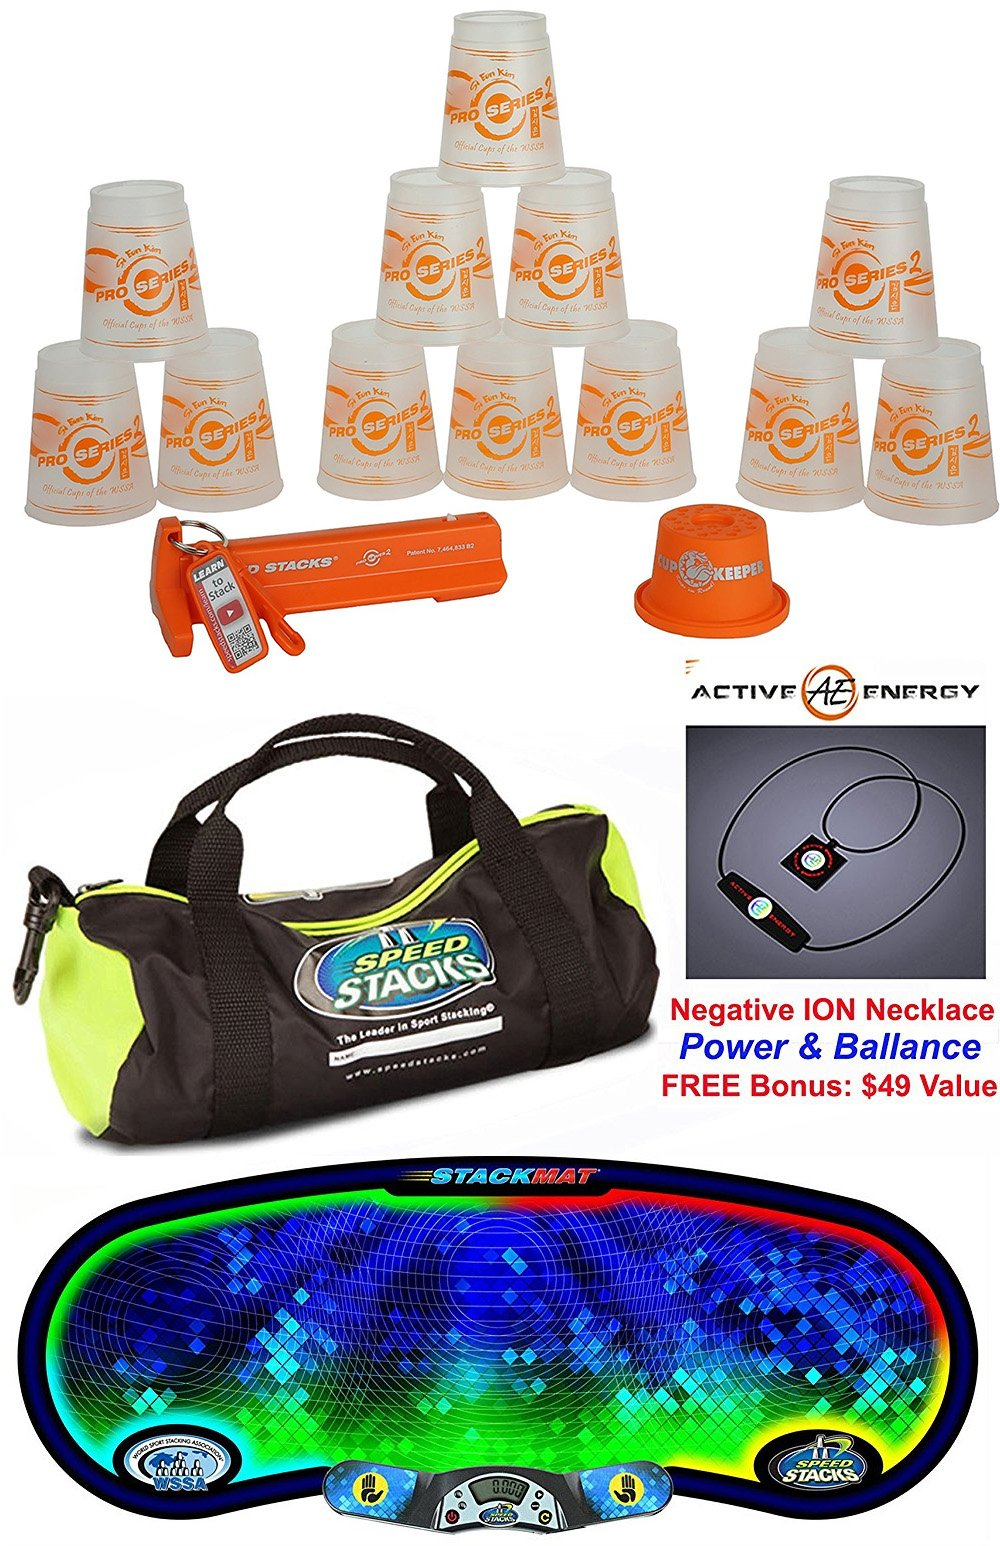 Speed Stacks The Works Custom Combo Set: 12 PRO Series 2 ORANGE/CLEAR Si Eun Kim 4'' Cups, Cup Keeper, Quick Release Stem, Pro Timer G4, Gen 3 Mat, Gear Bag + Active Energy Necklace $49 Value by Speed Stacks